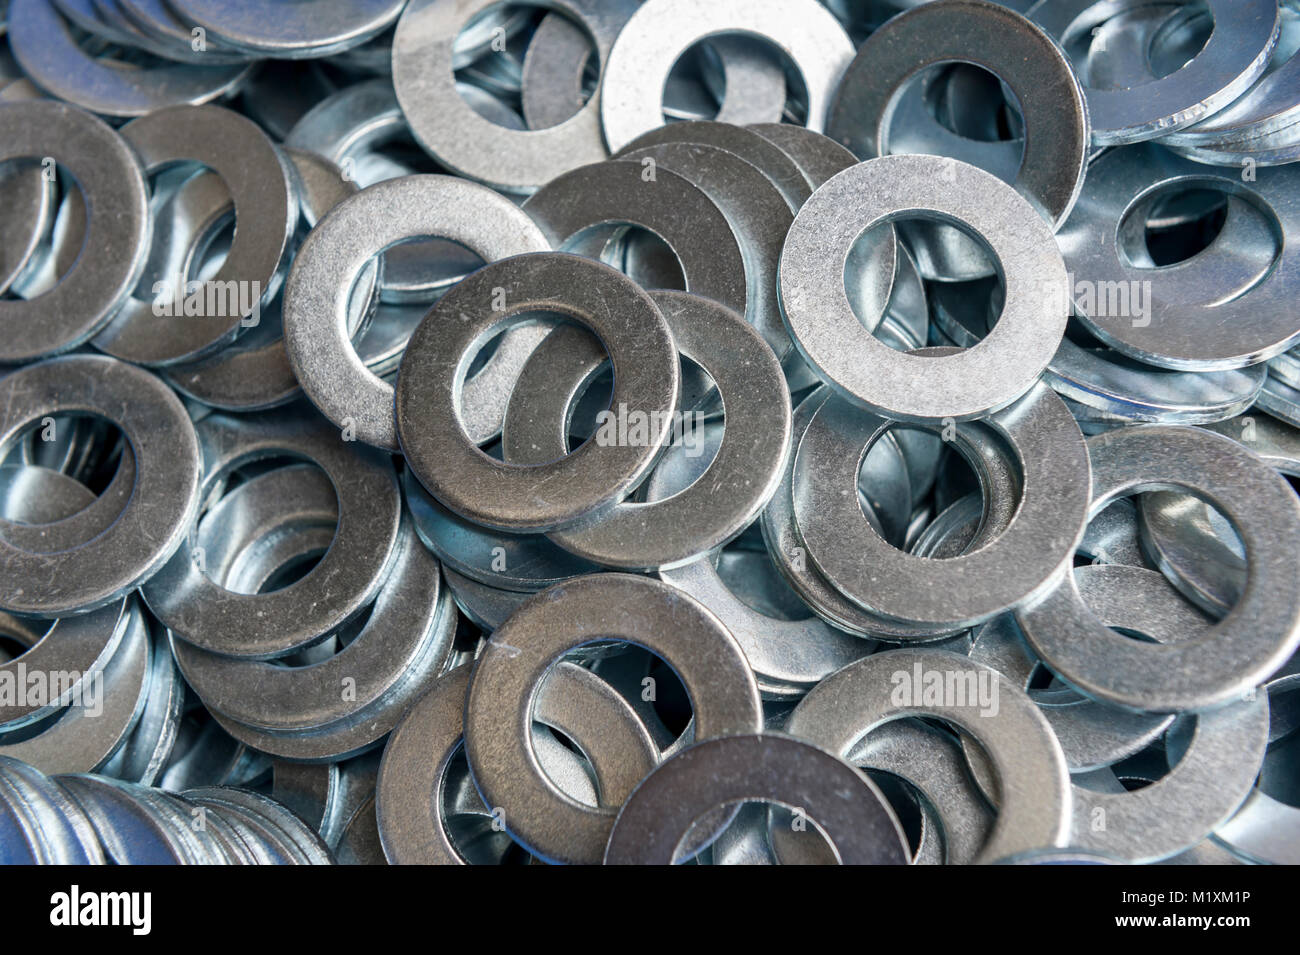 Box  of washers - Stock Image